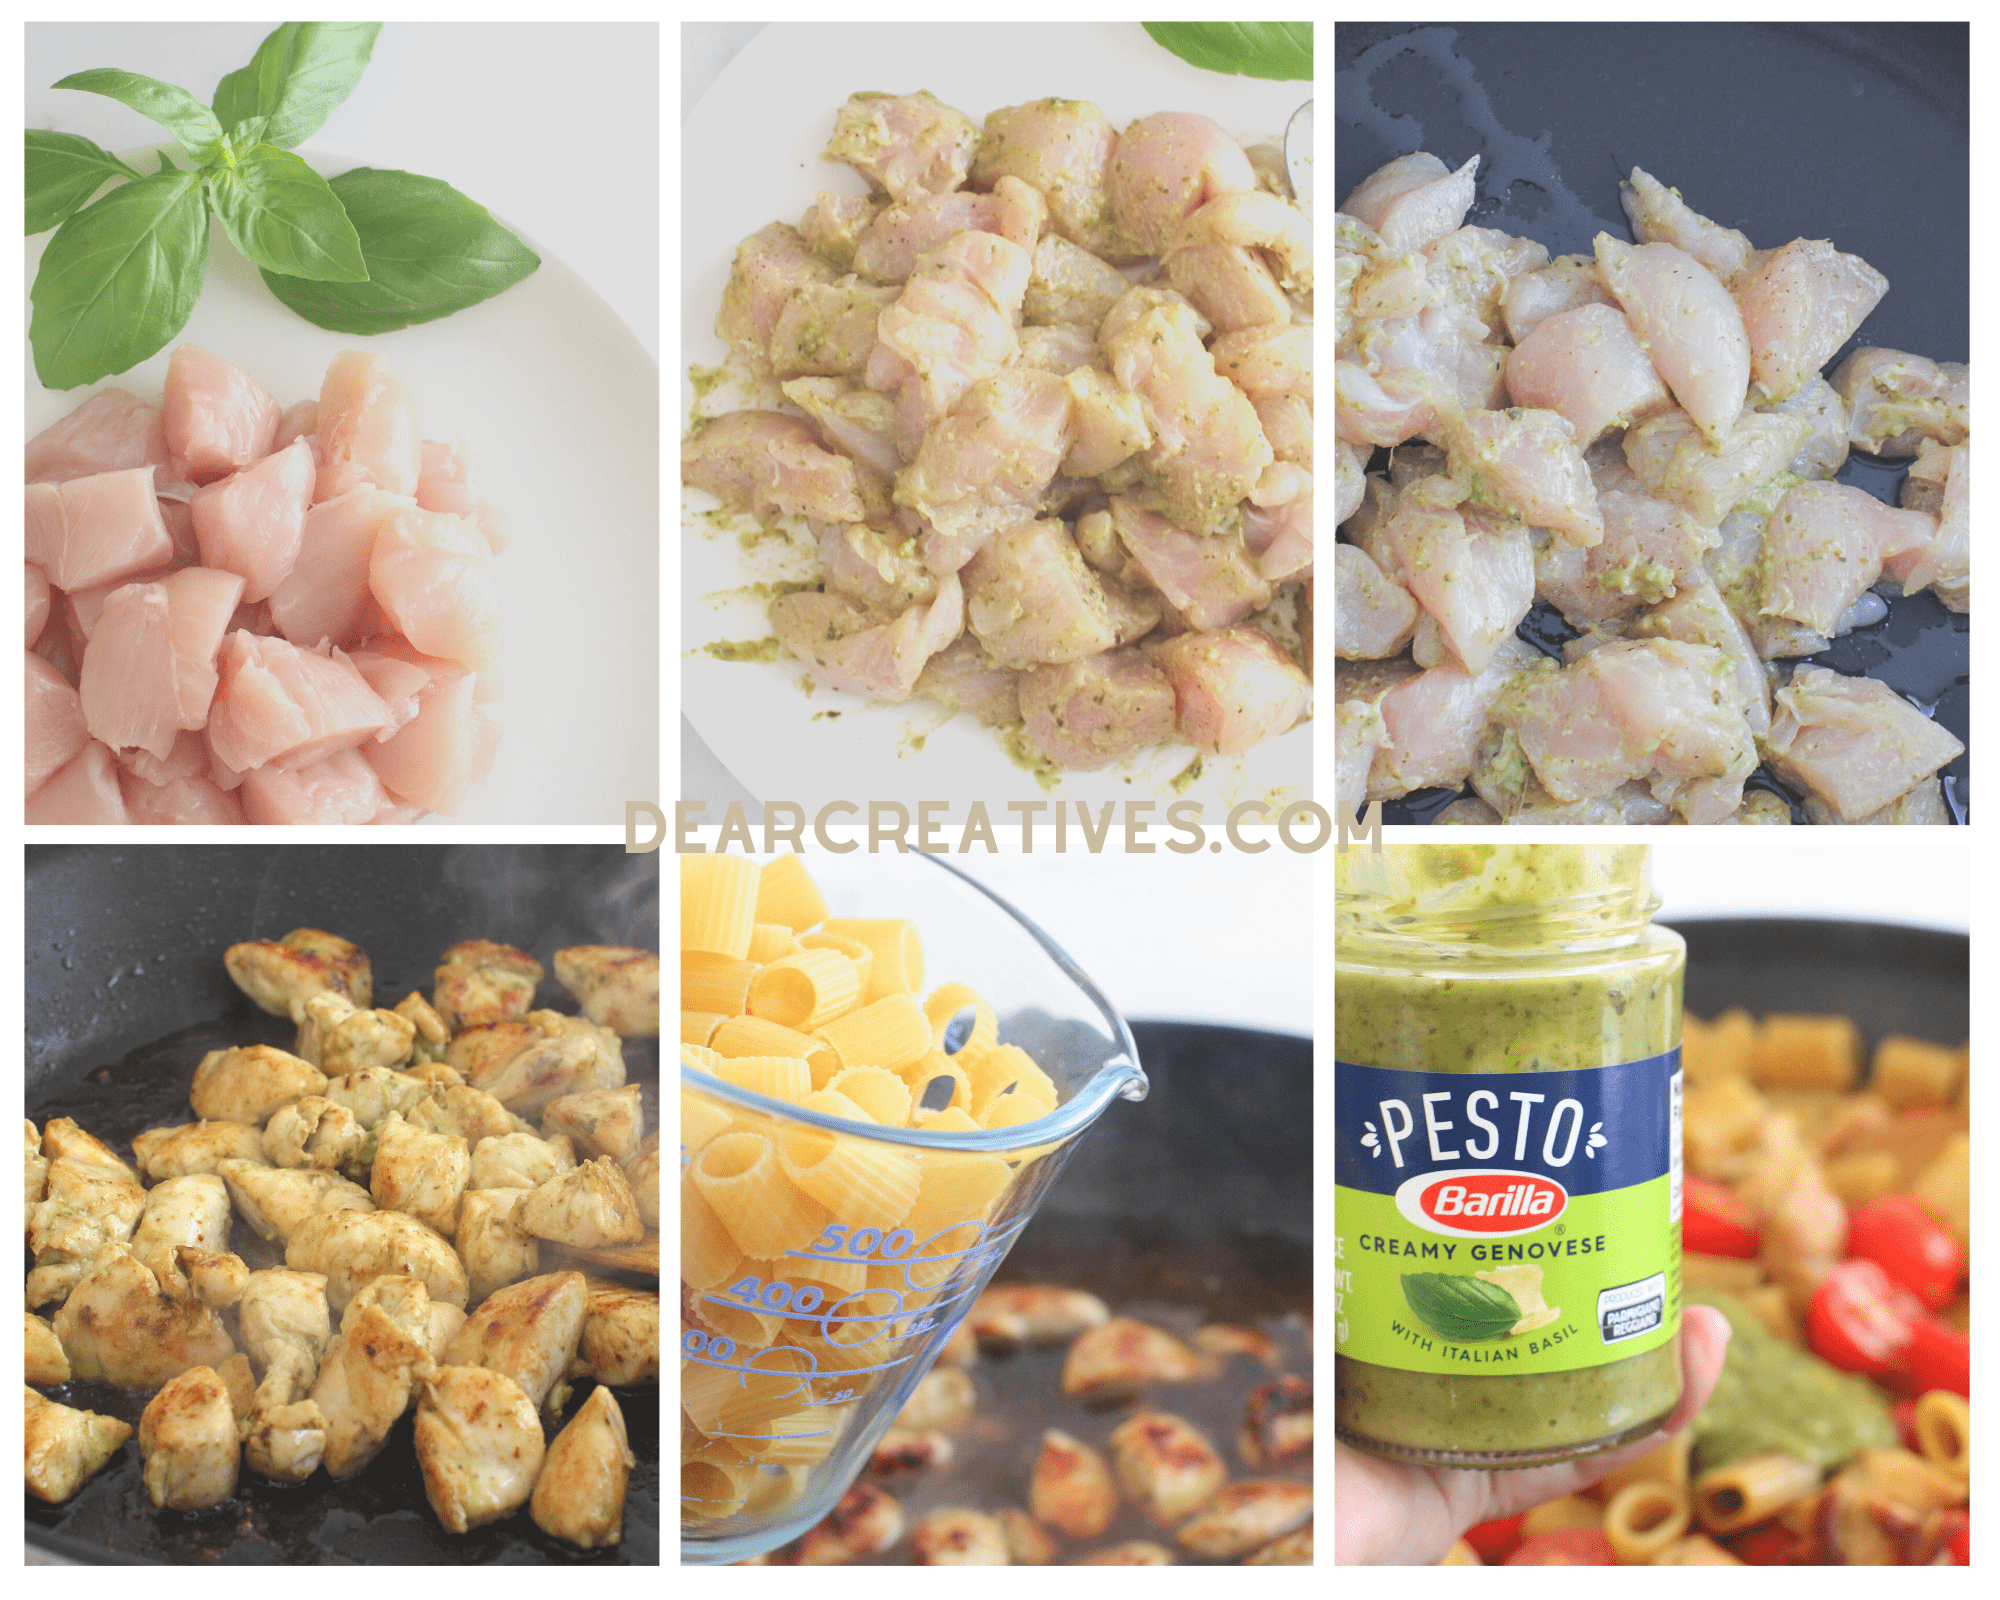 How to make pesto pasta with chicken - Step-by-Step images, instructions print the recipe at DearCreatives.com